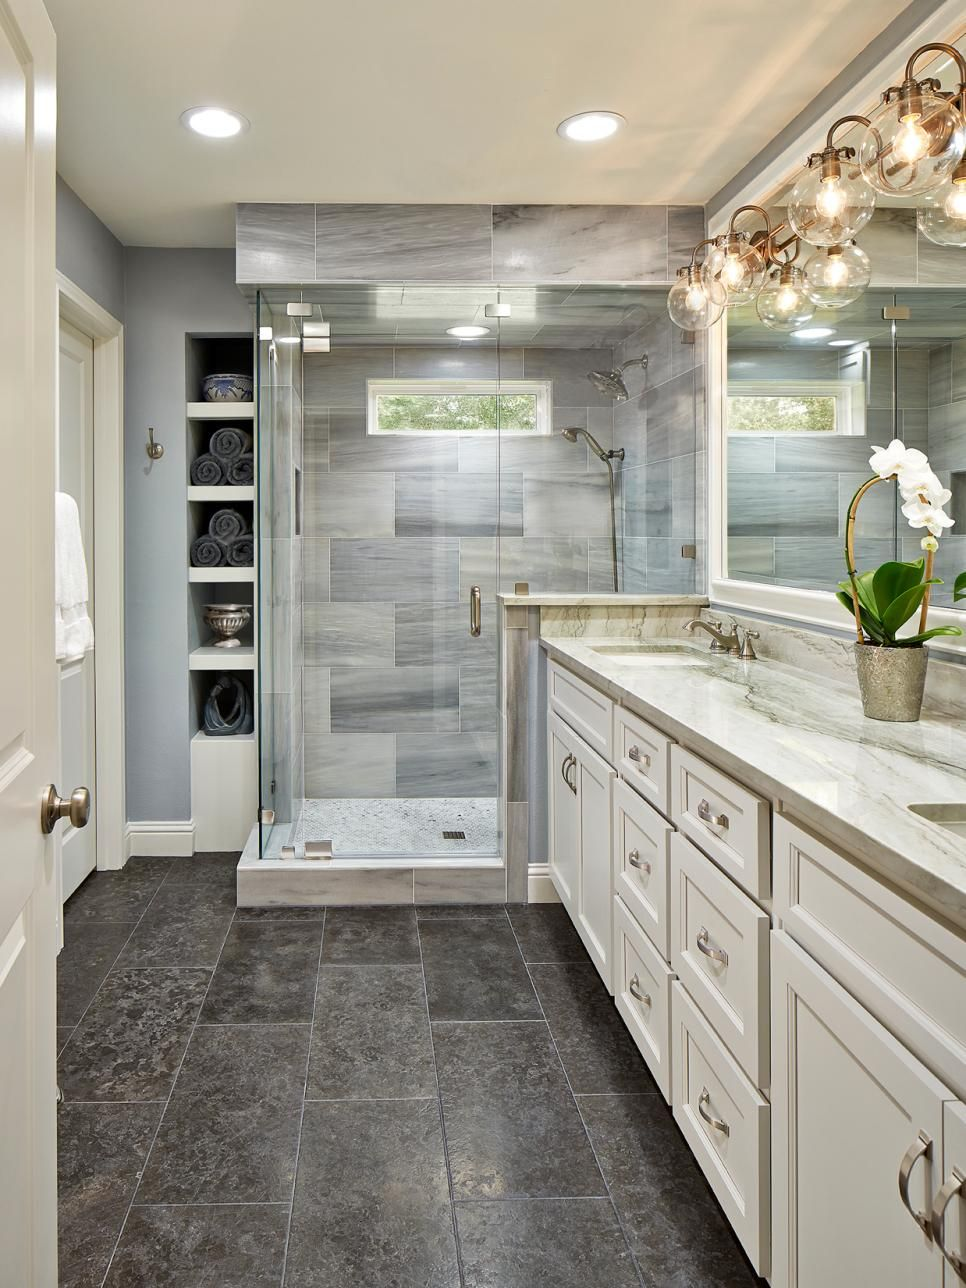 This beautiful master bathroom pulls elements from for Master bathroom modern